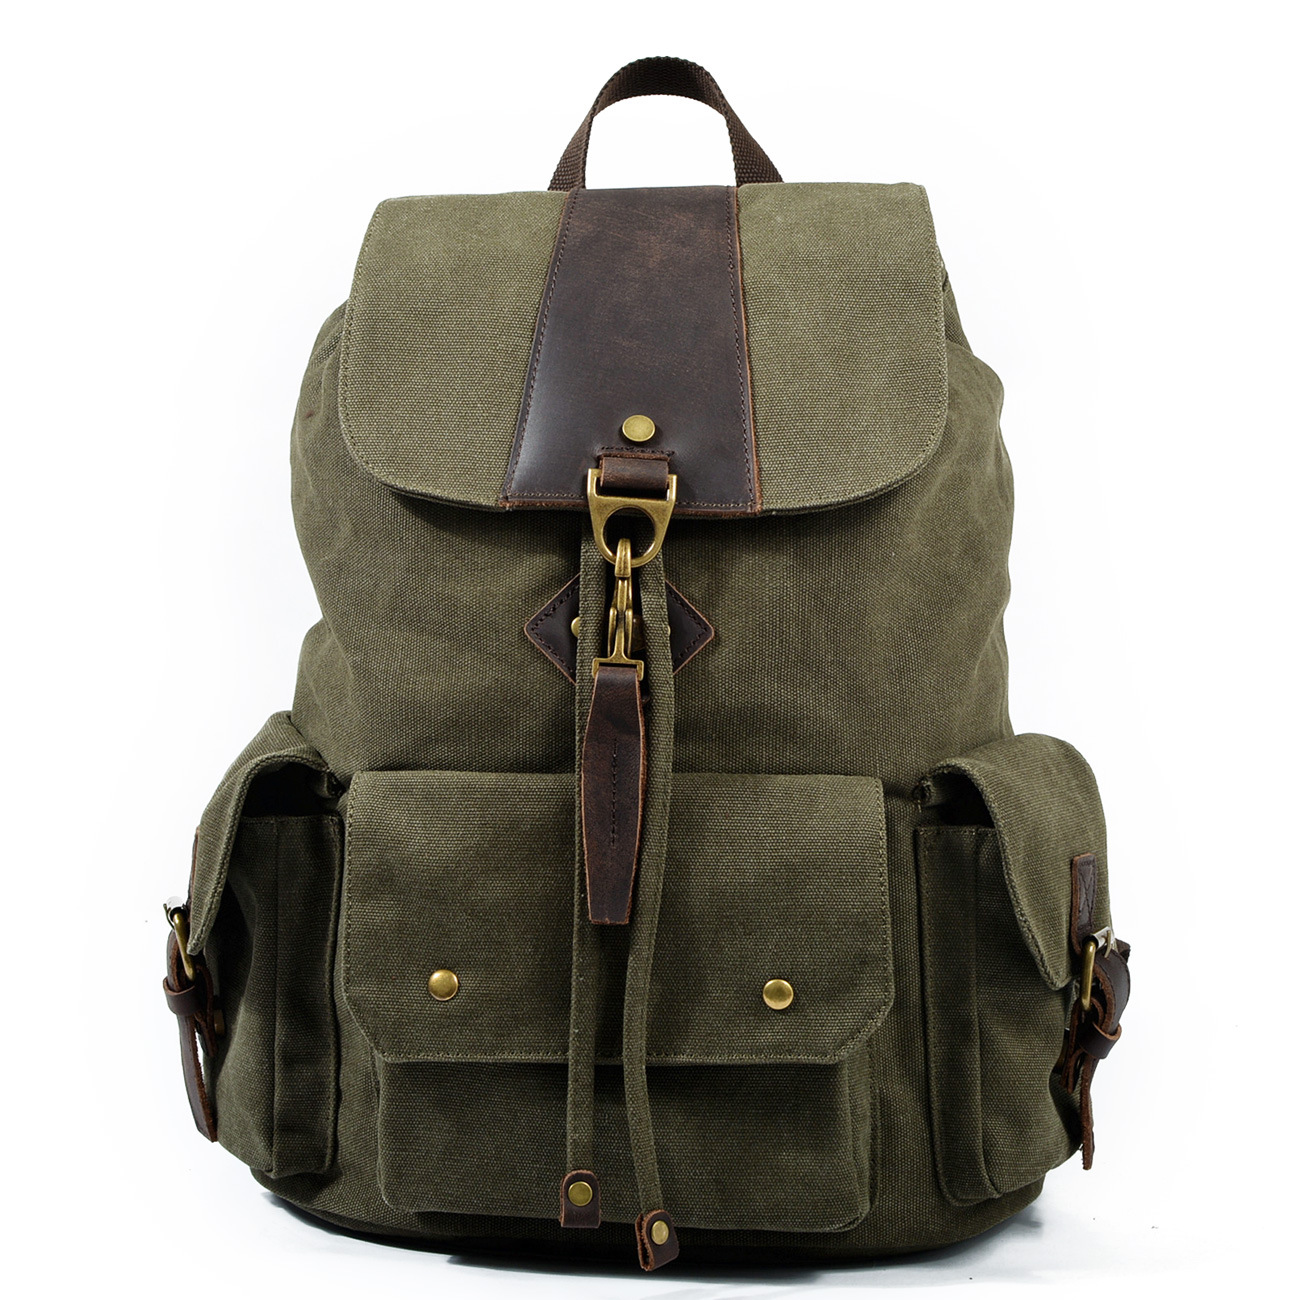 High Quality Man Canvas Backpack Men Laptop Backpacks Casual Bookbag Unisex School Bags Vintage Brand Male Travel Rucksack new fashion vintage backpack canvas backpack teens leisure travel school bags laptop computers unisex backpacks men backpack